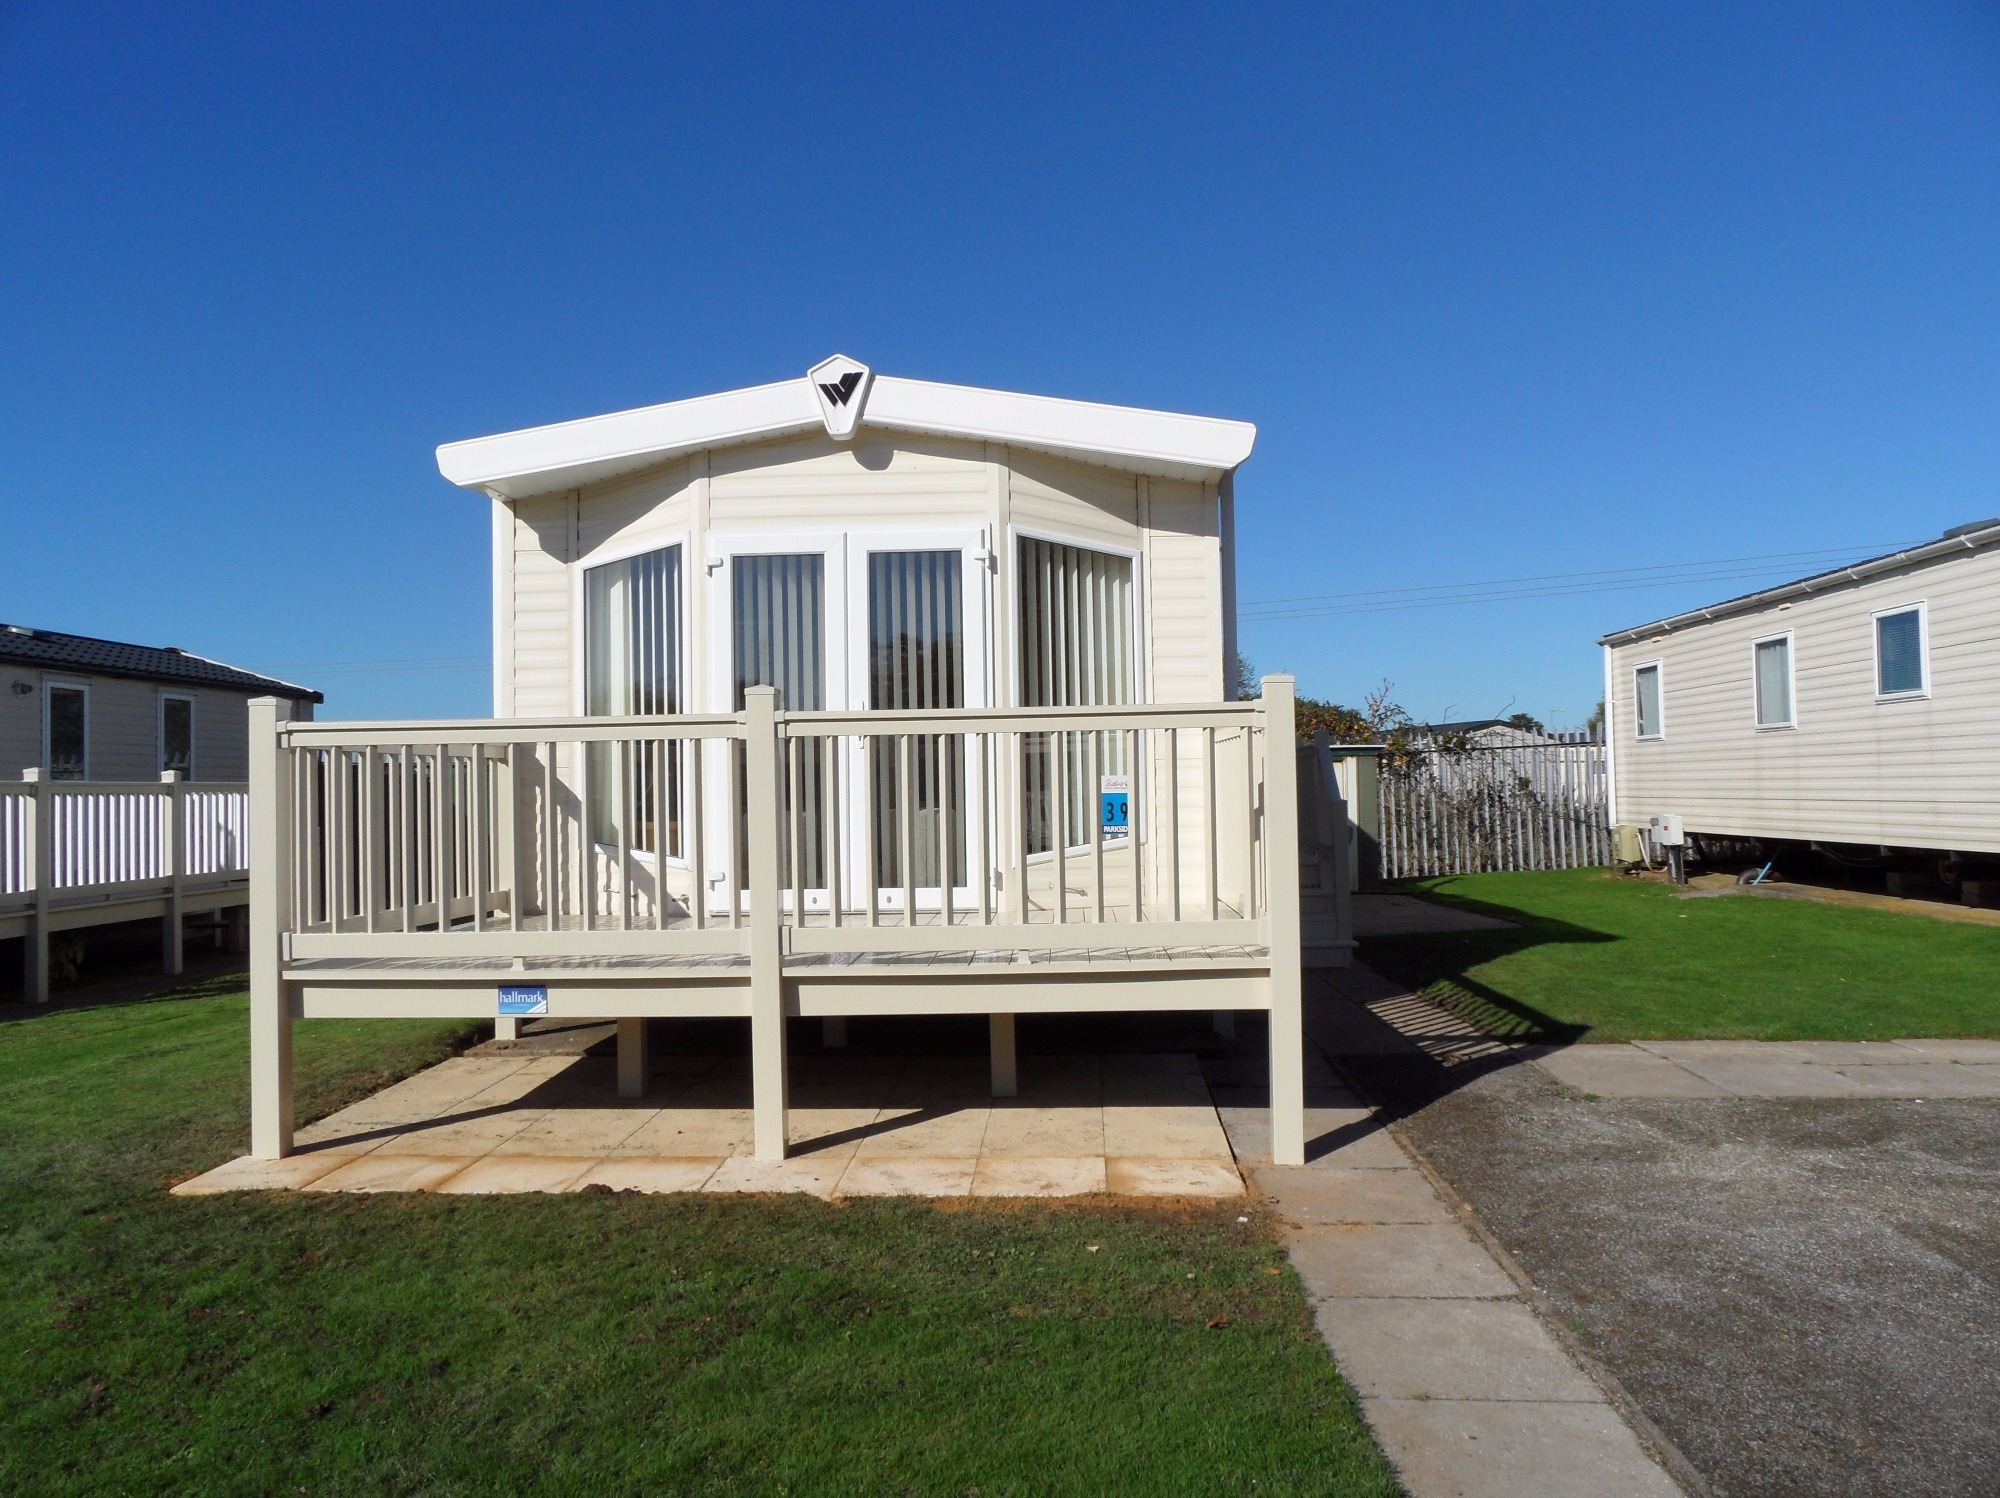 Butlins Skegness Caravans parkside 39, gold plus accommodation